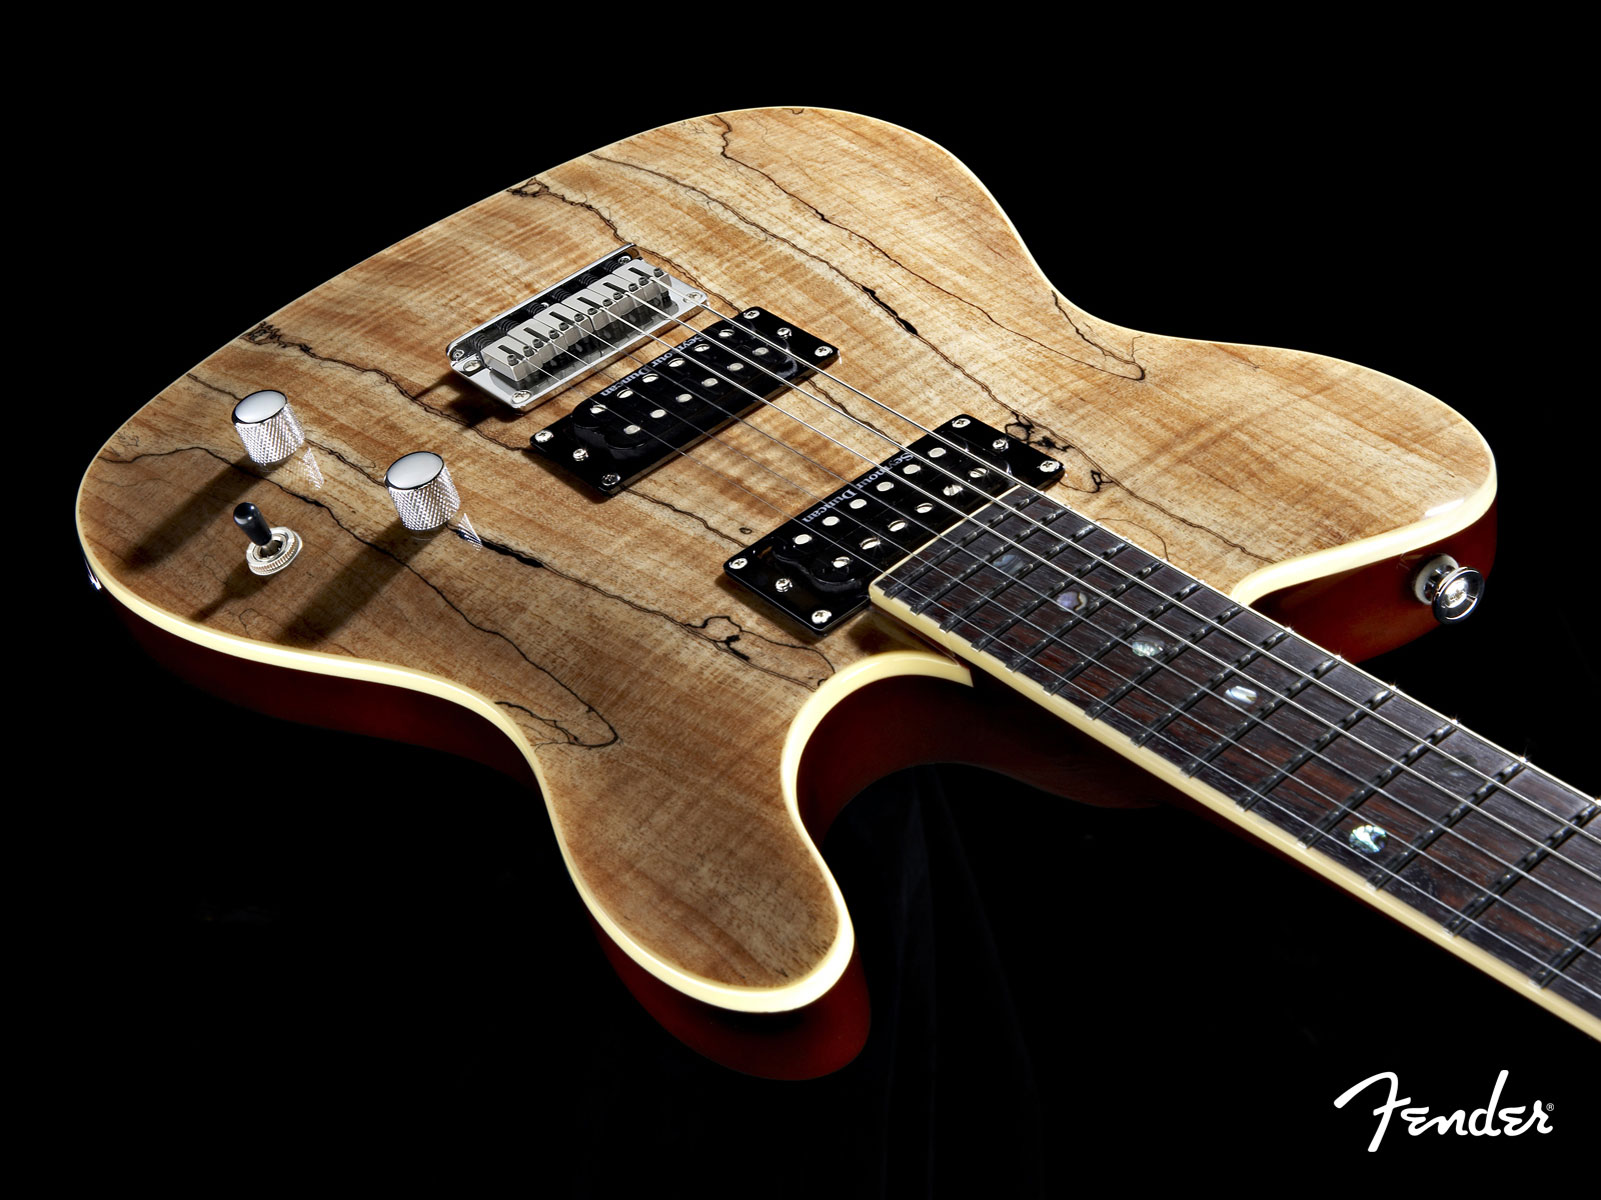 Fender telecaster wallpaper wallpapersafari - Fender stratocaster wallpaper hd ...